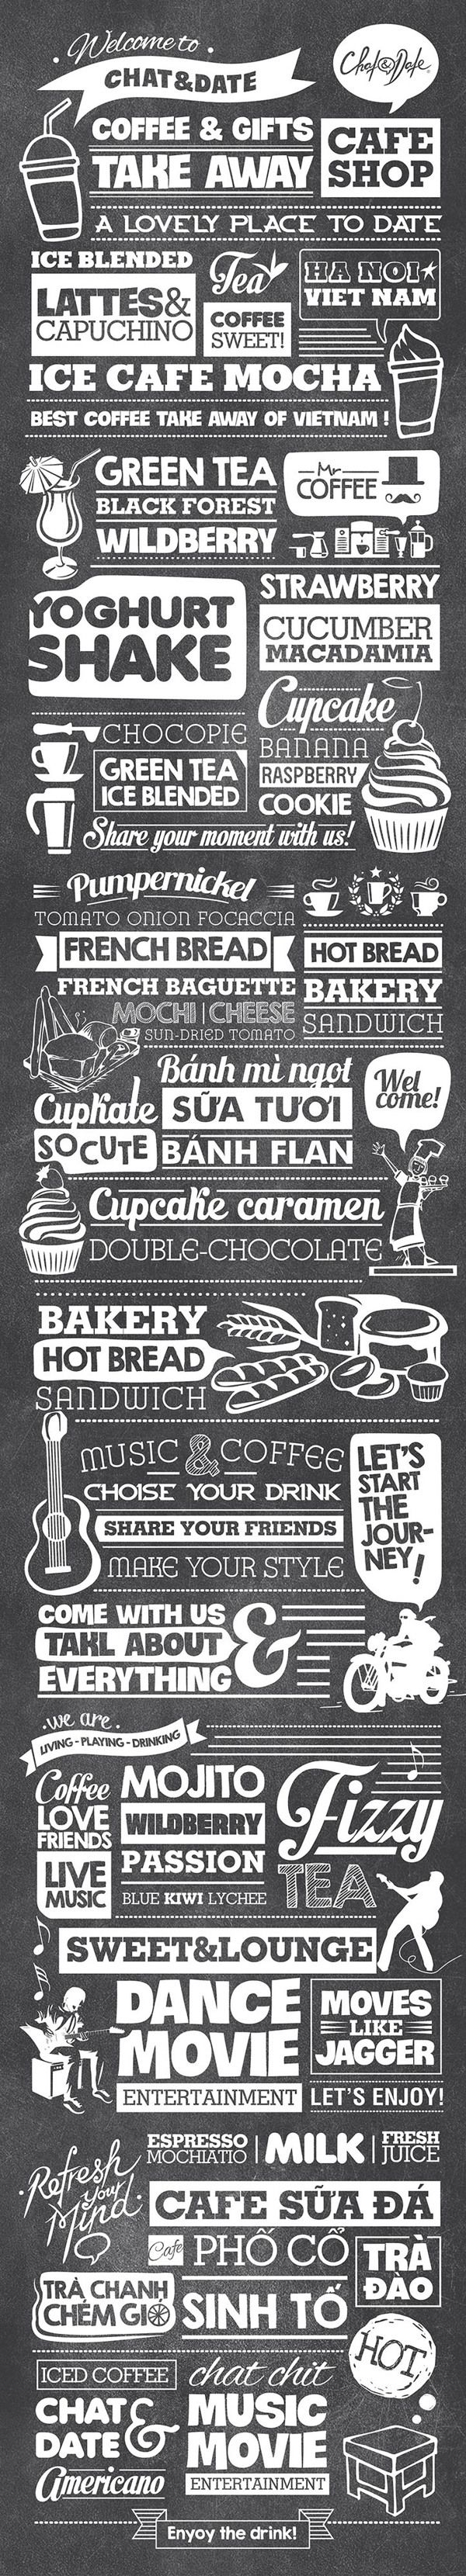 Typography Decoration for Chat&Date by Hieu Trieu, via Behance